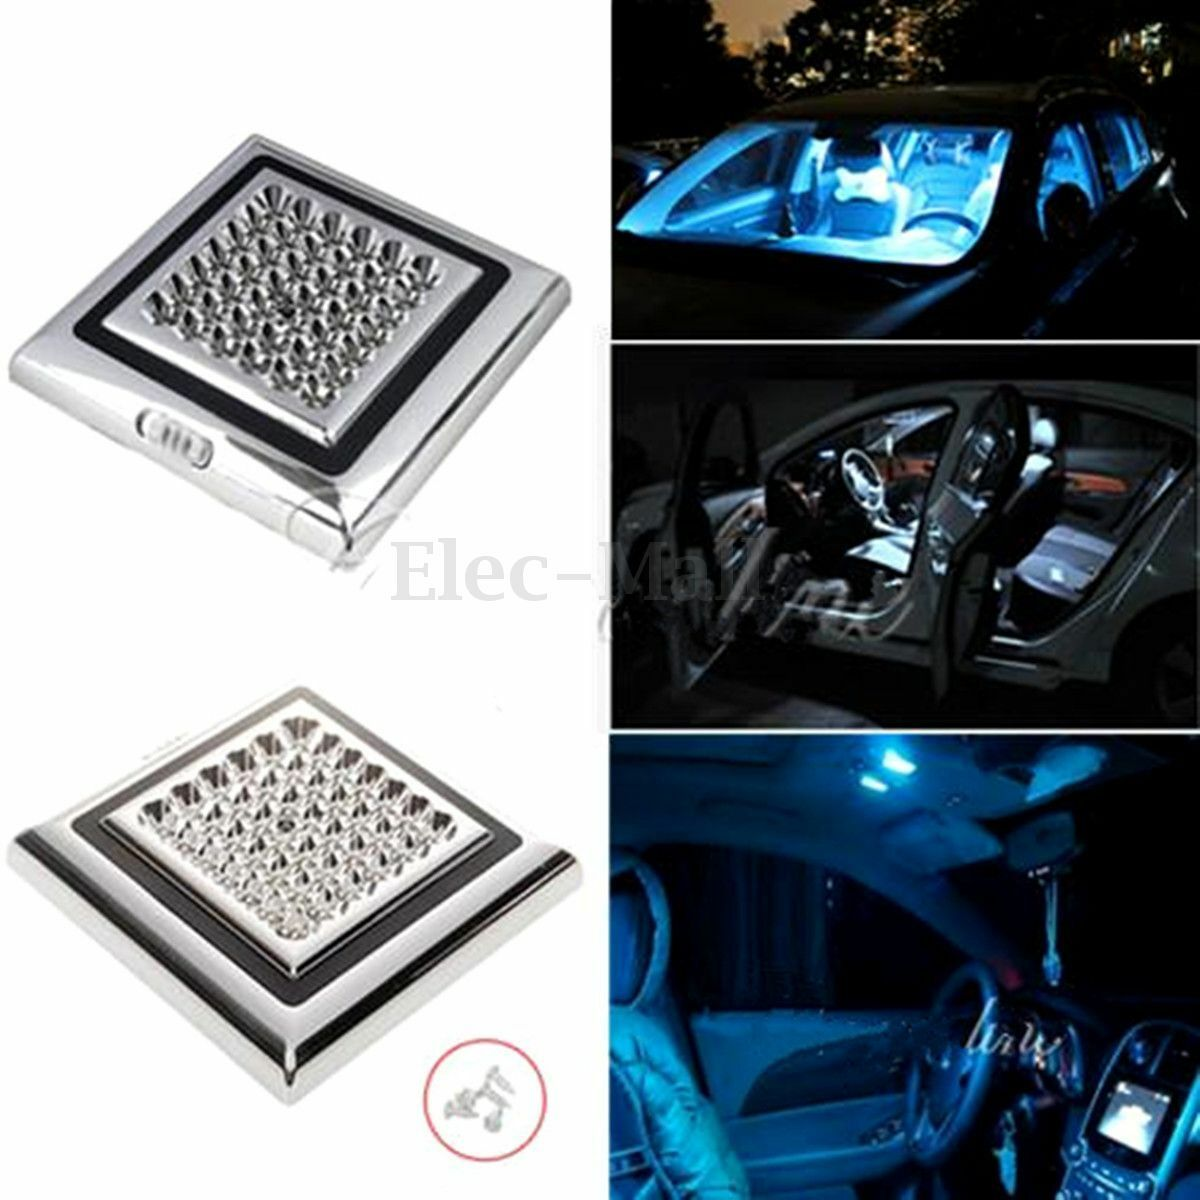 42 led lampe plafond toit plafonnier int rieur lumi re blanc clairage voiture eur 4 74. Black Bedroom Furniture Sets. Home Design Ideas